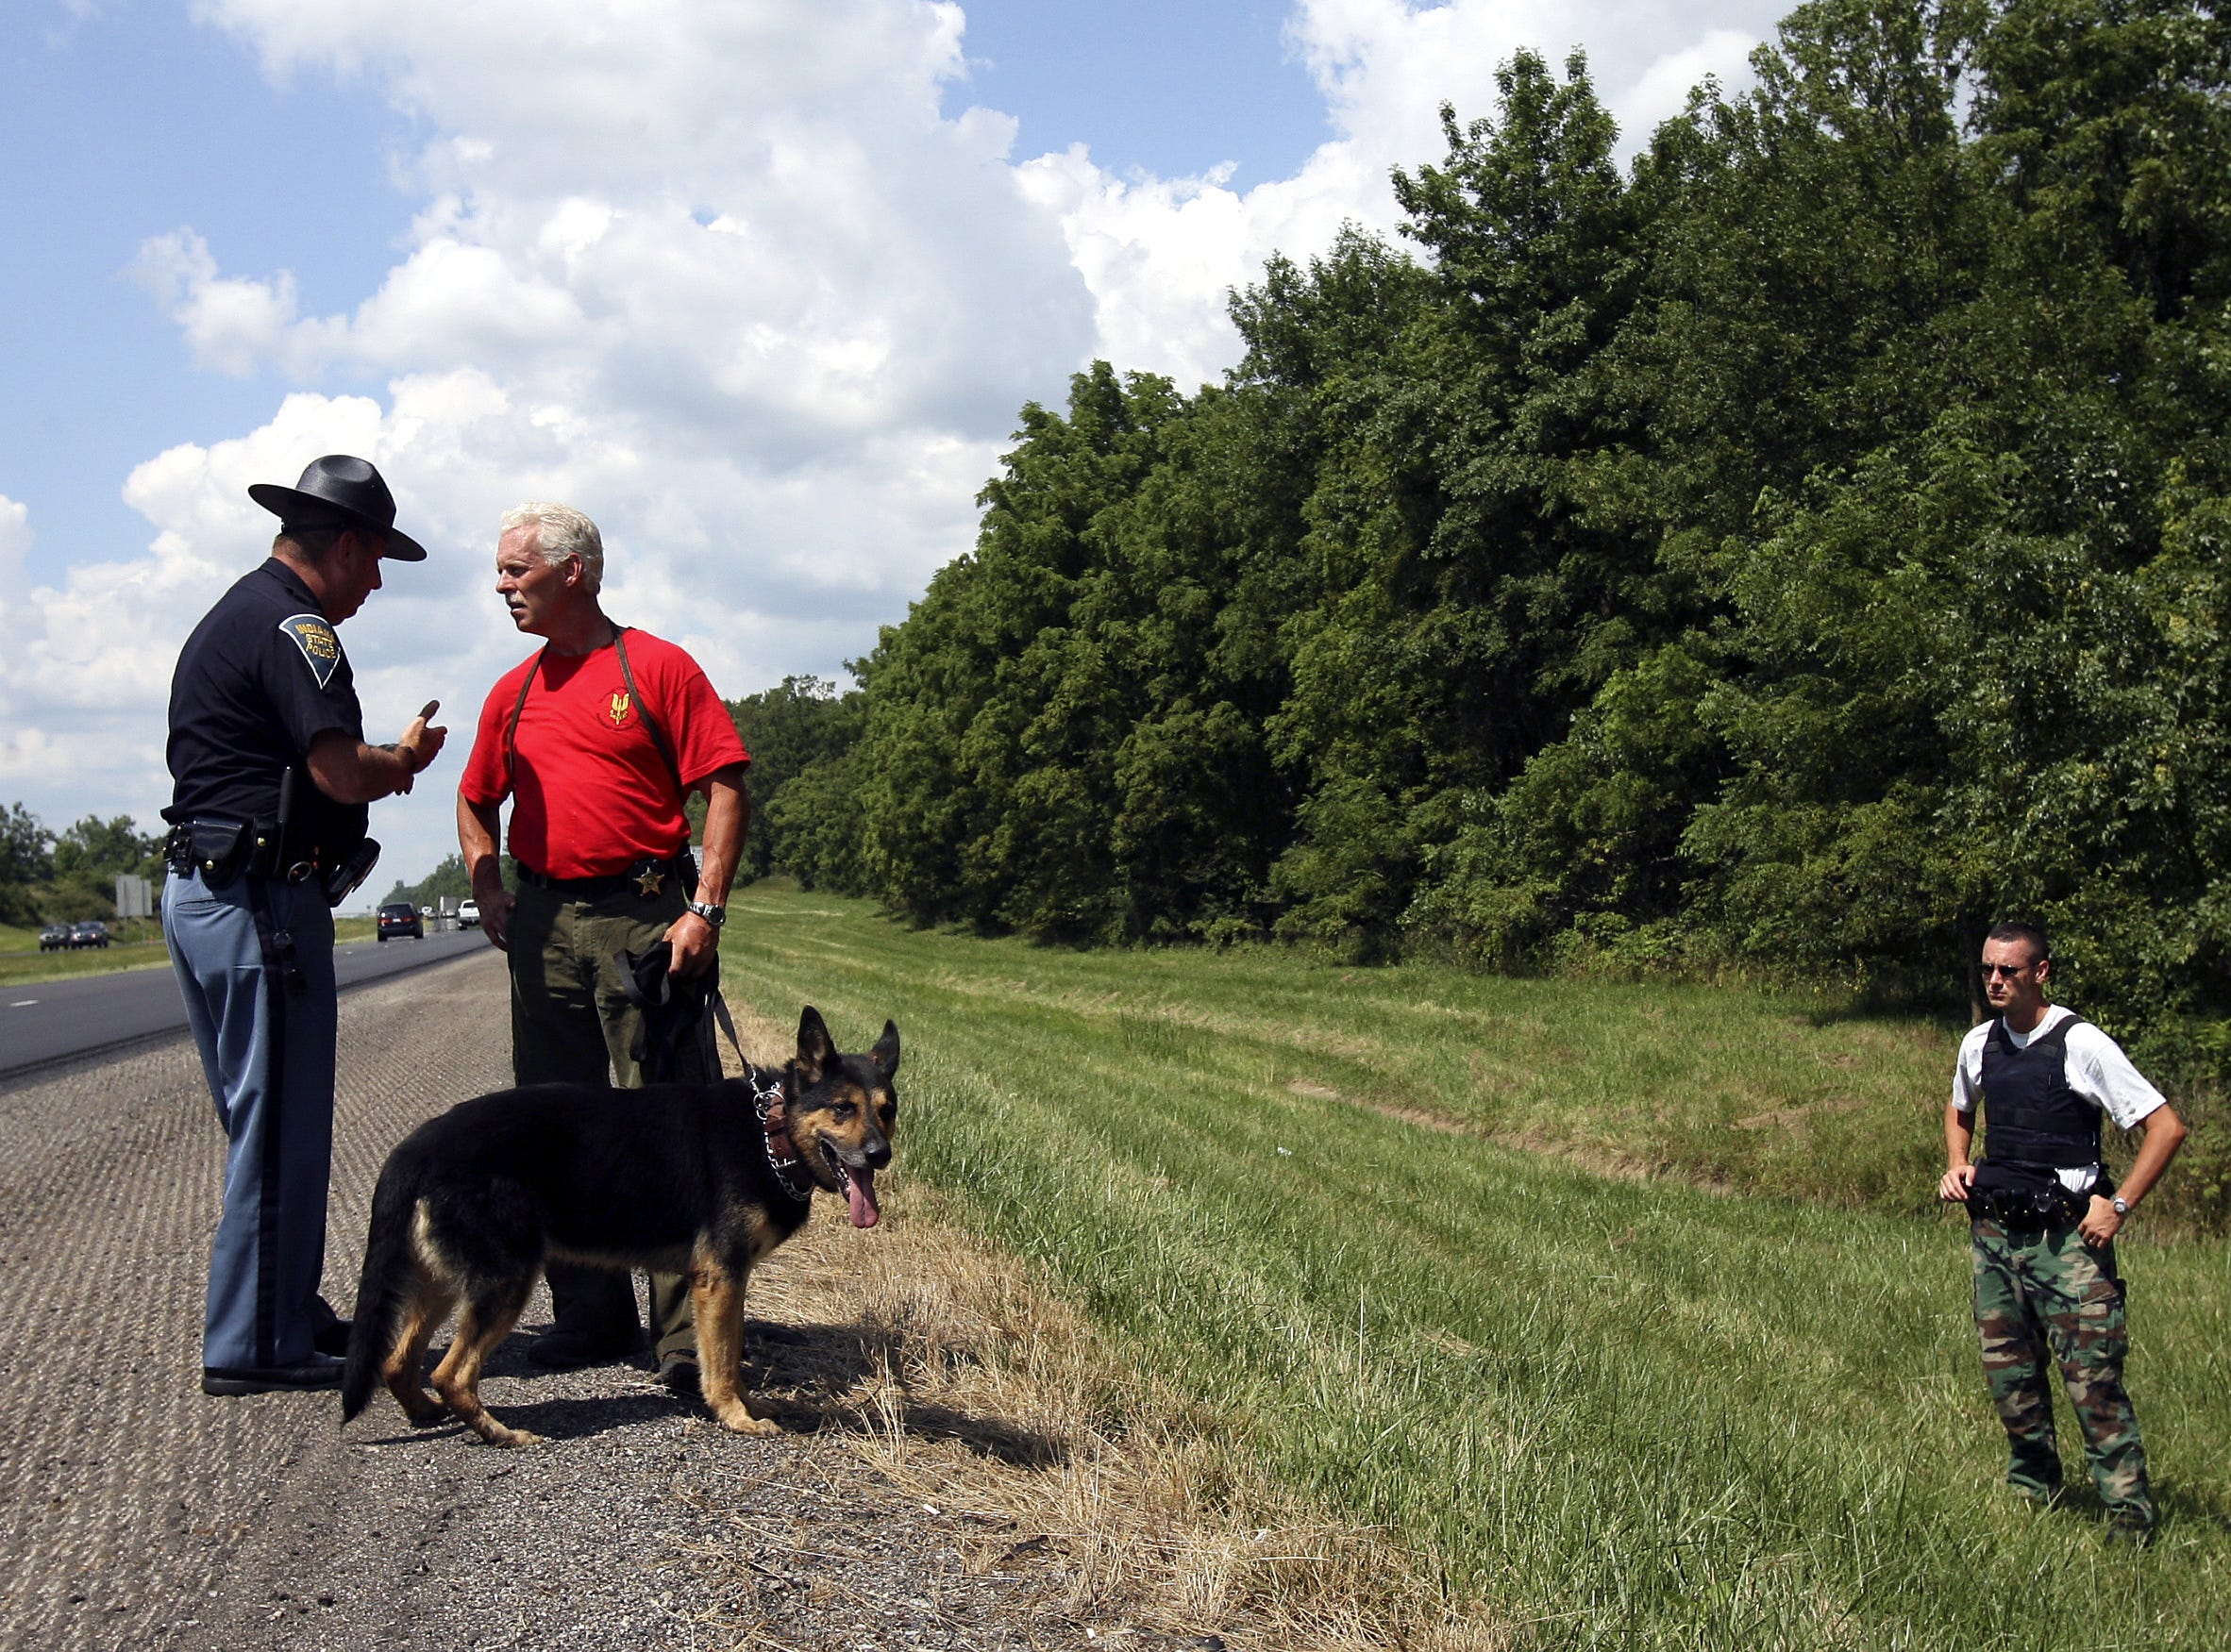 FROM 2006: Sheriff George Sheridan talks with Indiana State Police Sergeant Rod Russell while a state trooper looks on after a sniper reportedly fired a gunshot at a semi as it traveled on Interstate 69 in western Delaware County.